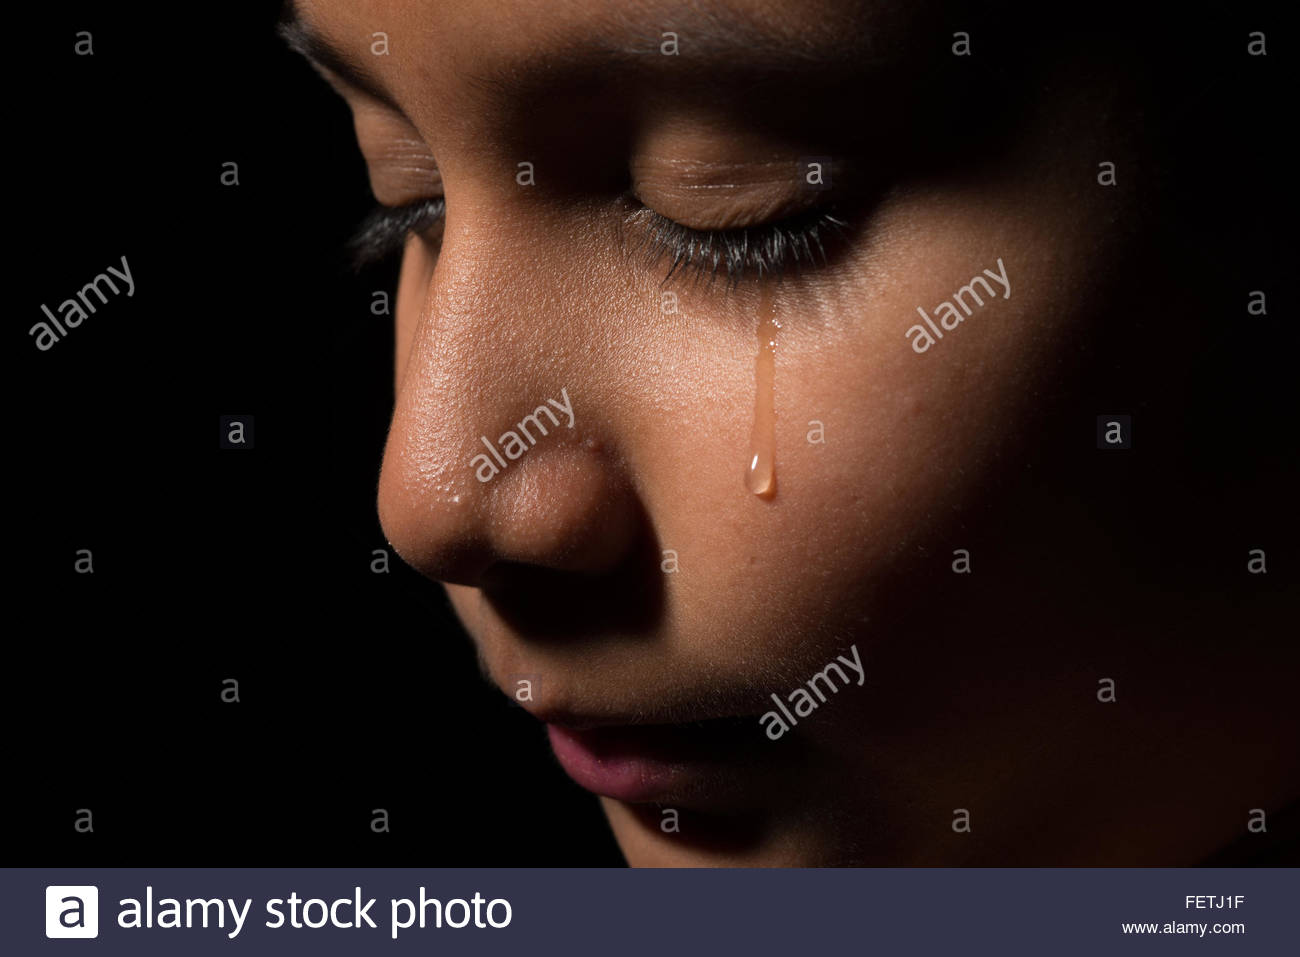 Young Asian child, could be a girl or boy crying with tears running down the face. - Stock Image